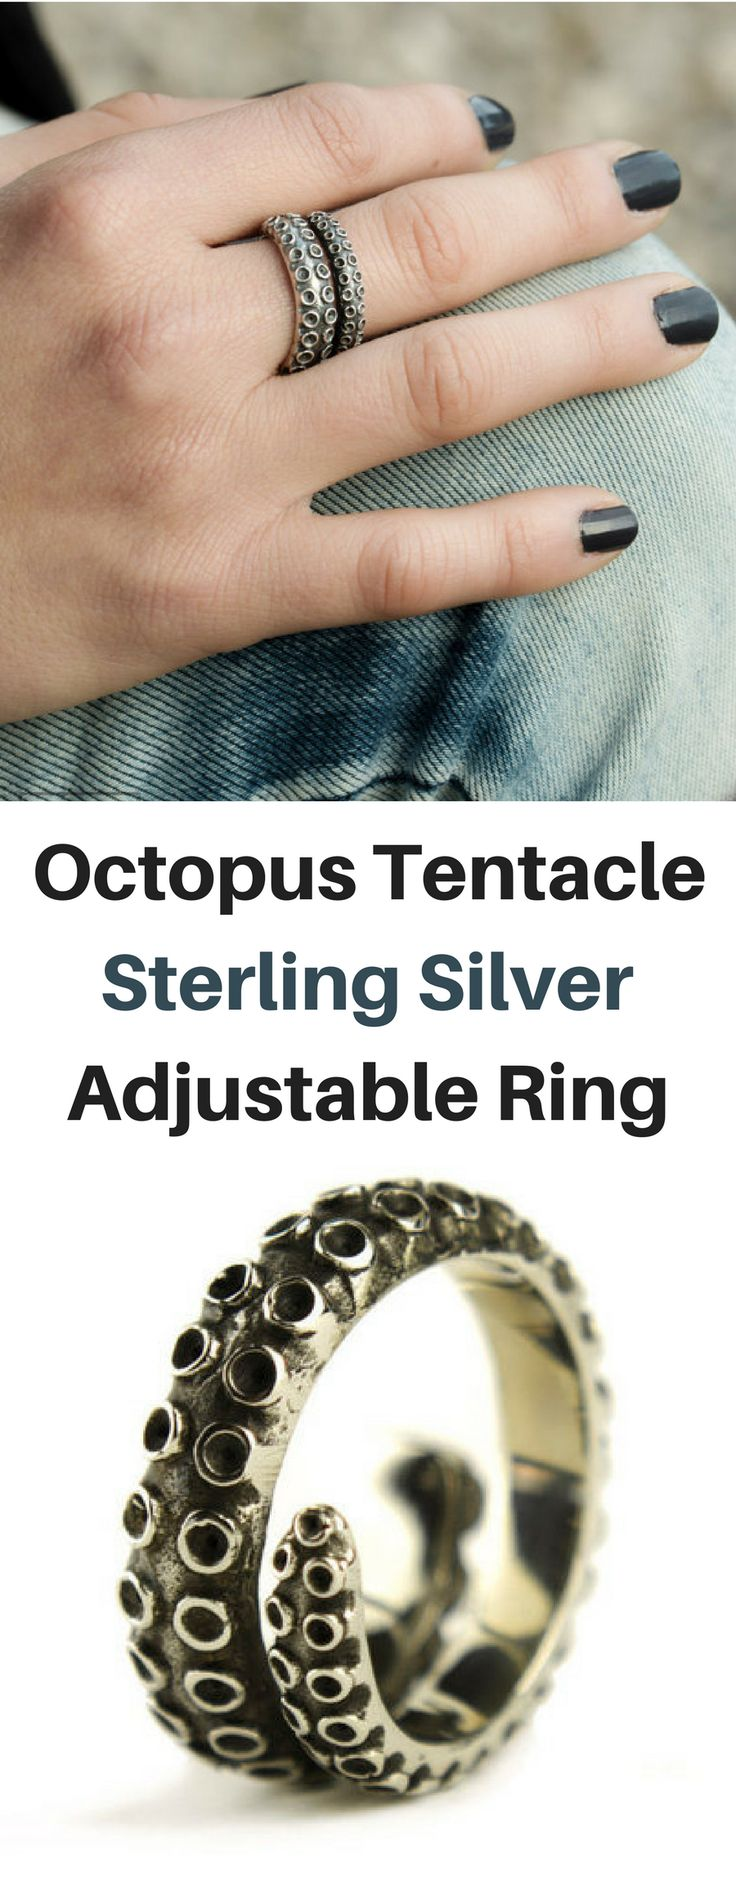 Awesome Octopus Tentacle Ring Sterling Silver Adjustable Ring Wrap Ring Boho Steampunk Jewelry NNT #Afflink #octopus #jewellery #ring #silverring #silverjewelry #steampunk #steampunkjewelry #giftidea #steampunktendencies #gift #bohojewelry silver rings   silver rings simple   silver rings boho   silver rings jewelry   octopus tentacle ring   Octopus Ring jewelry   Steampunk Jewelry   steampunk rings   Boho Rings  